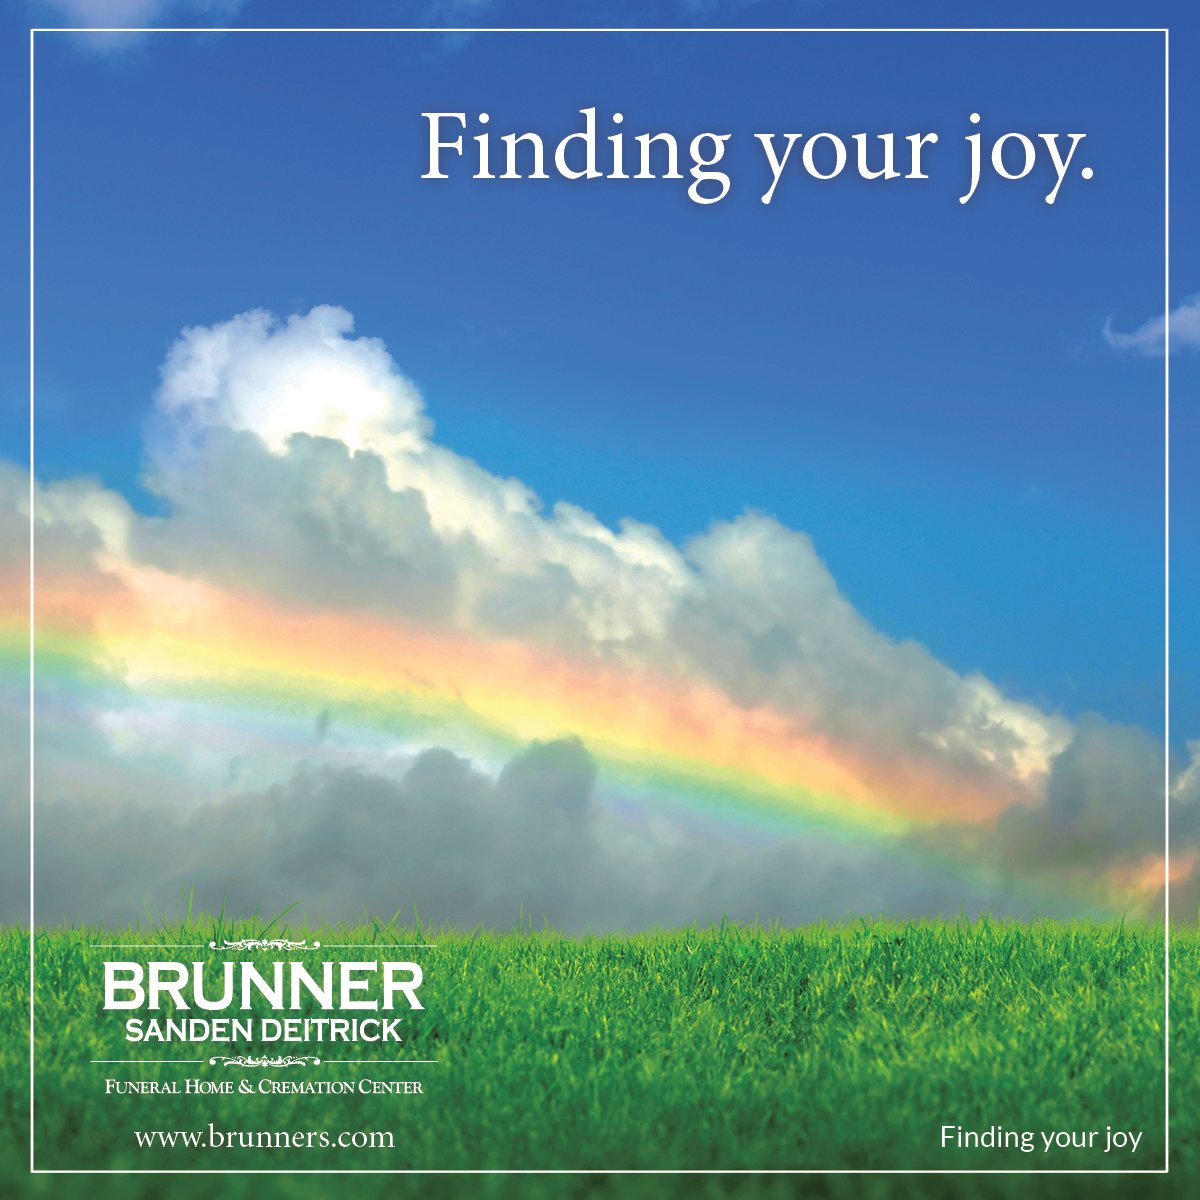 Finding your joy